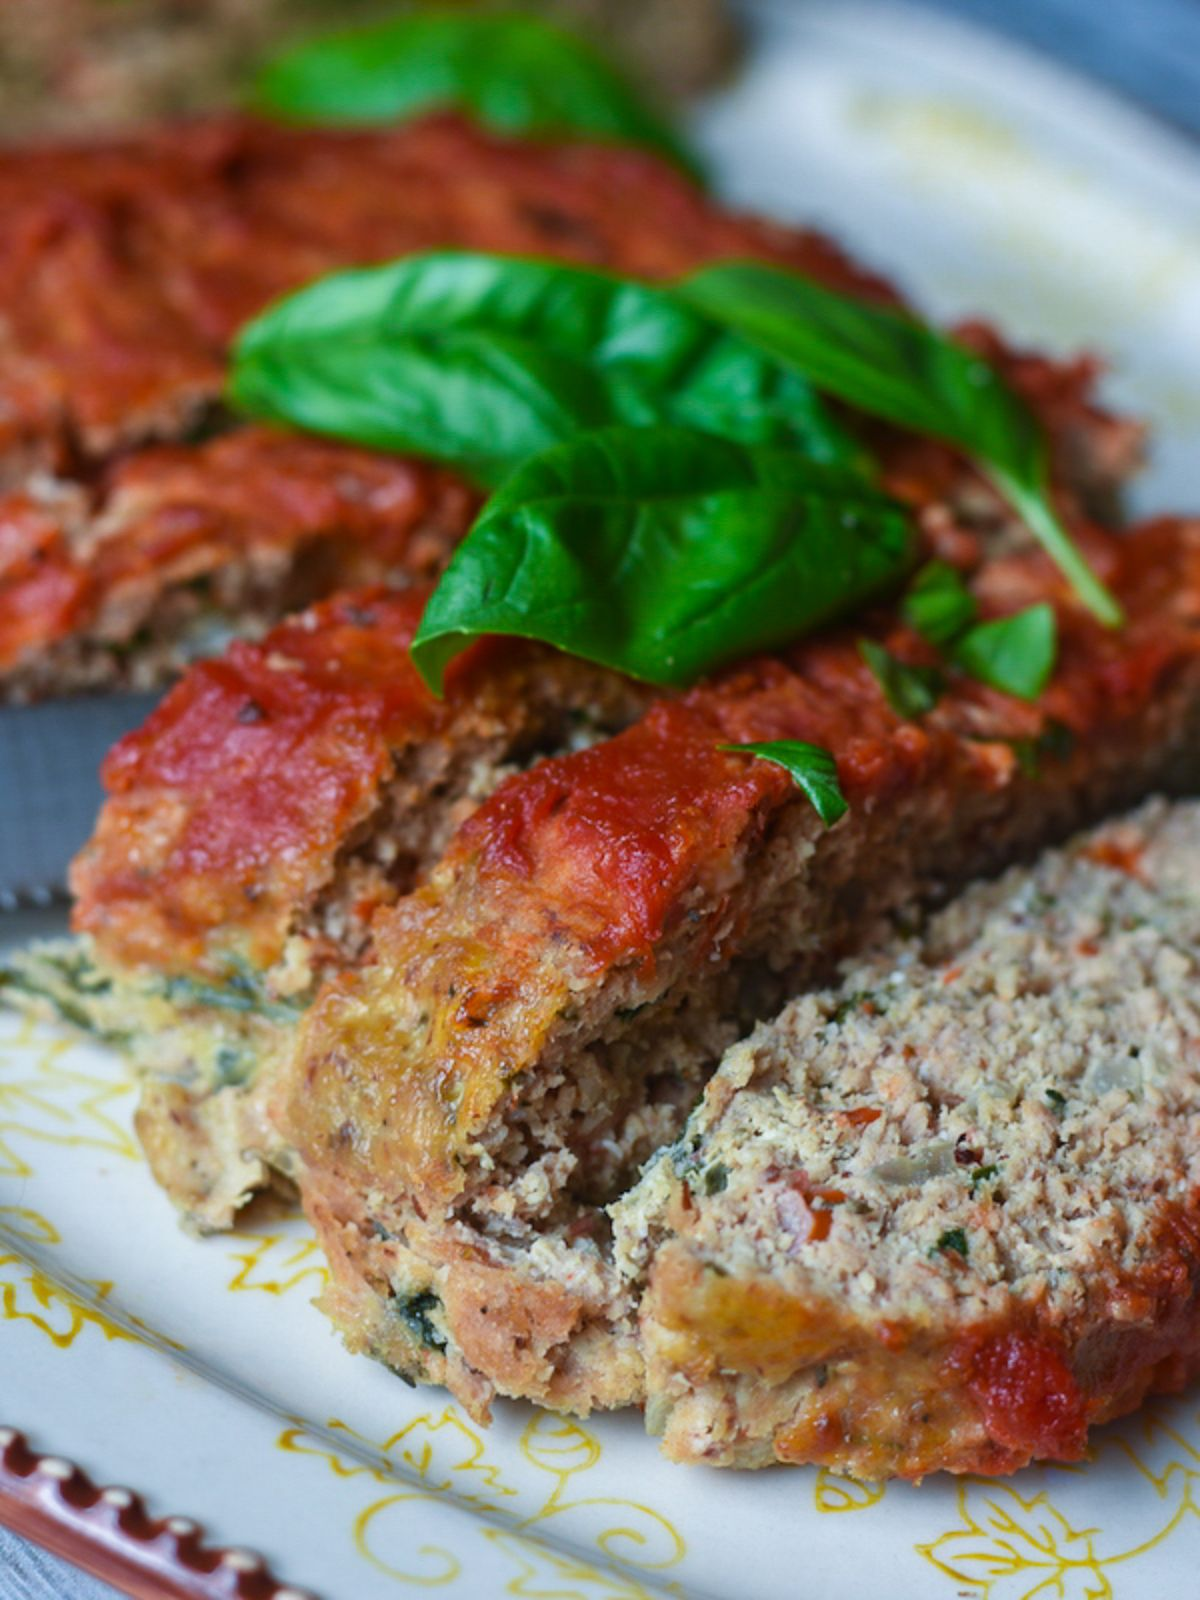 A partial shot of a platter with slices of meatloaf on it, topped with basil leaves